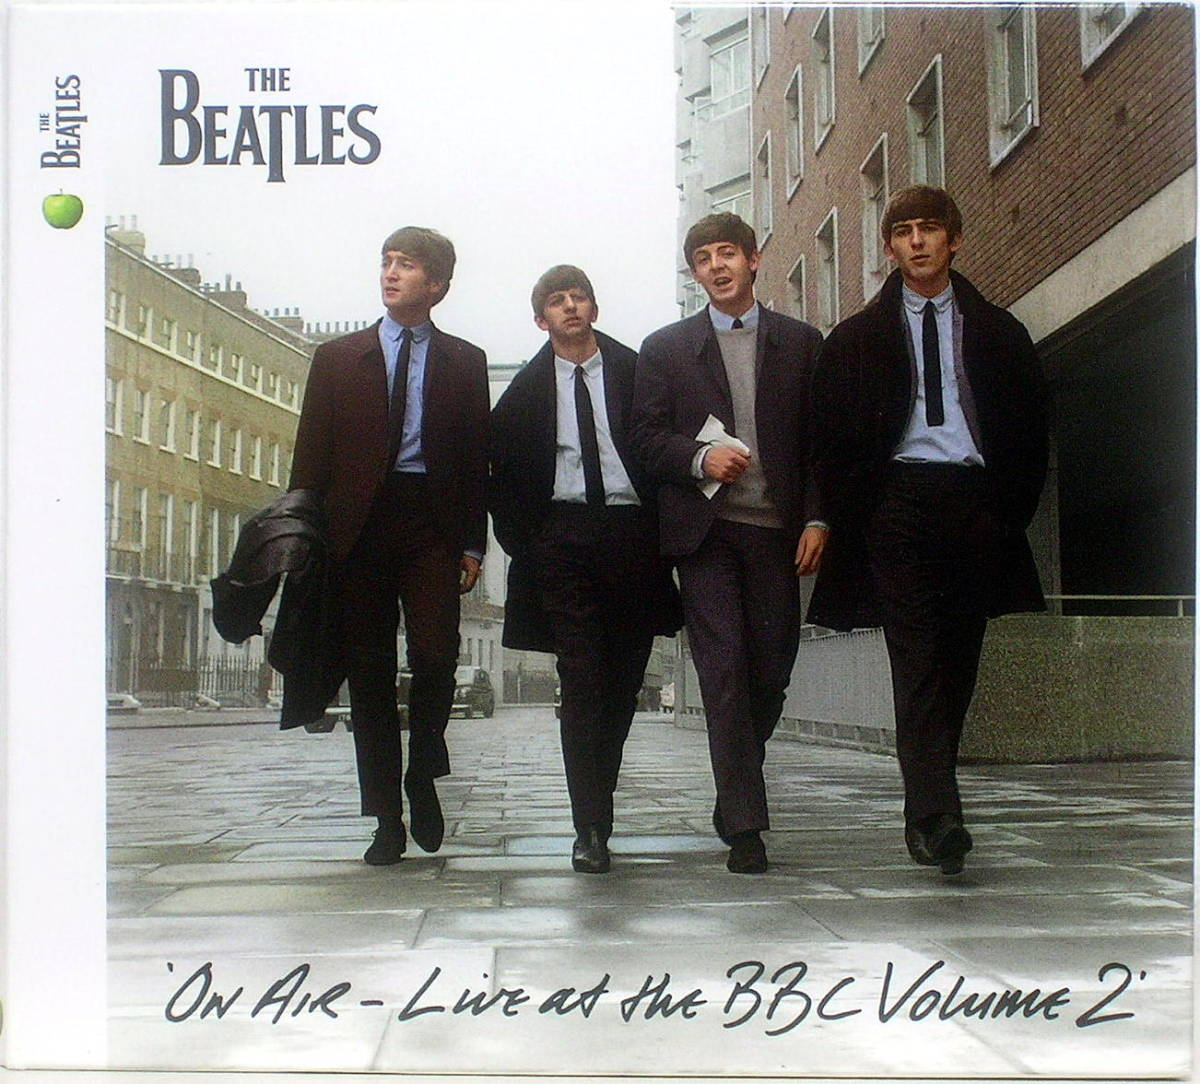 CD【ON AIR/LIVE AT THE BBC Volume 2】THE BEATLES ビートルズ/輸入盤_画像1